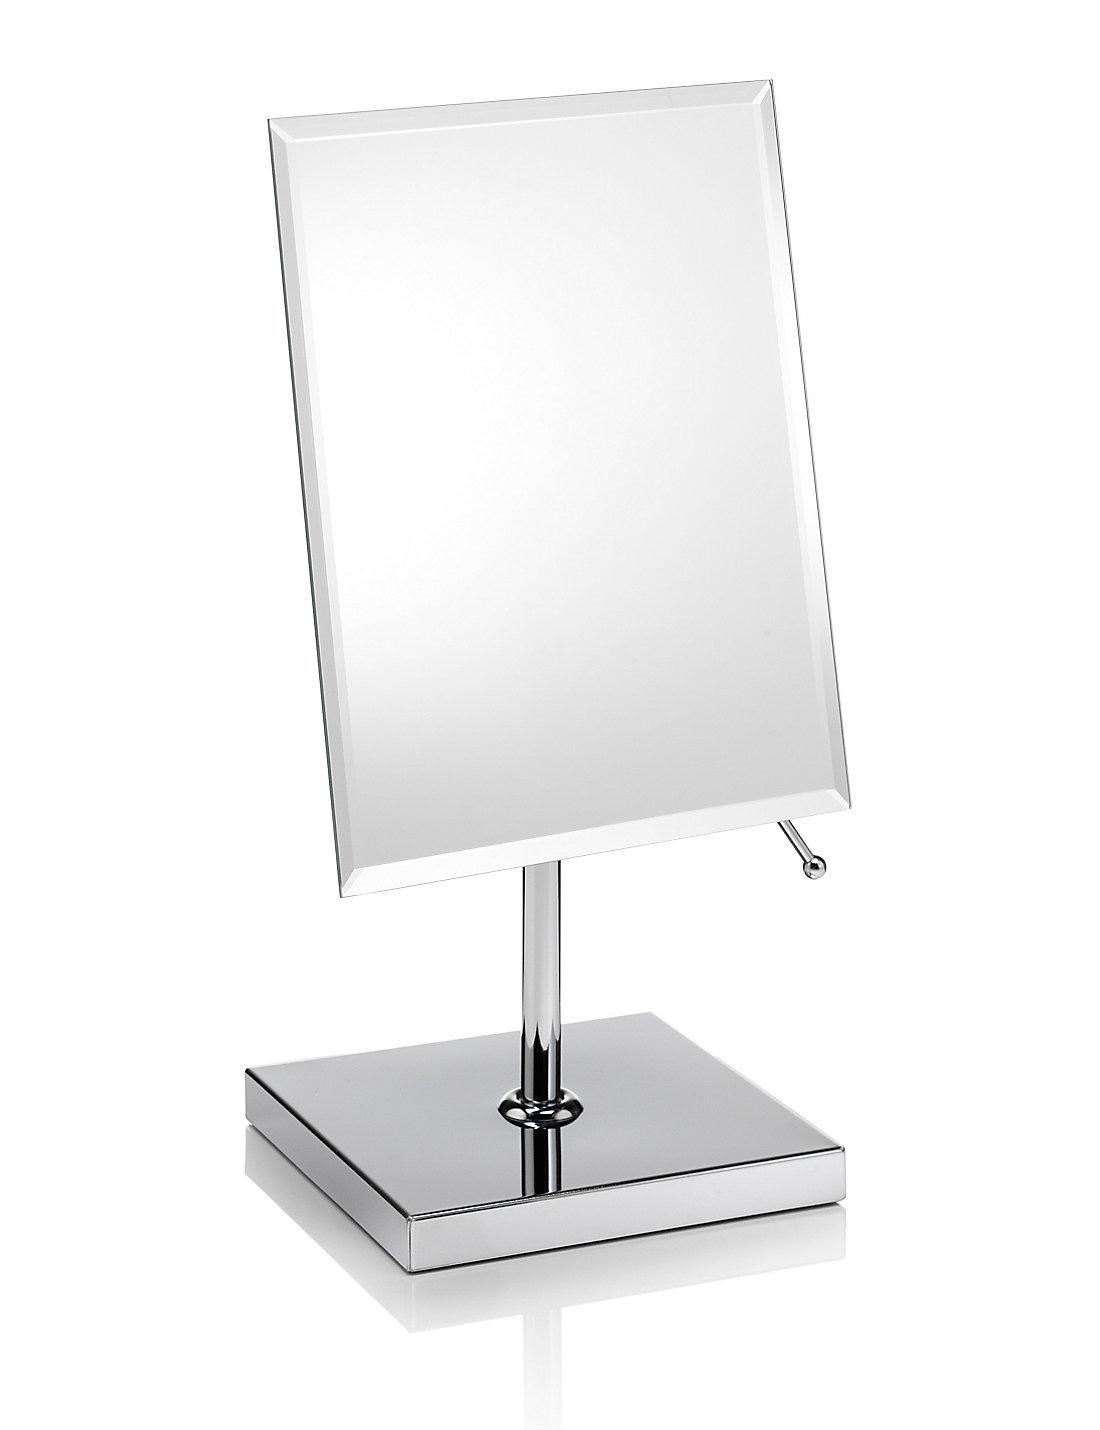 Awesome Free Standing Small Bathroom Mirrors 81 With Free Standing Intended For Small Free Standing Mirror (Image 1 of 20)